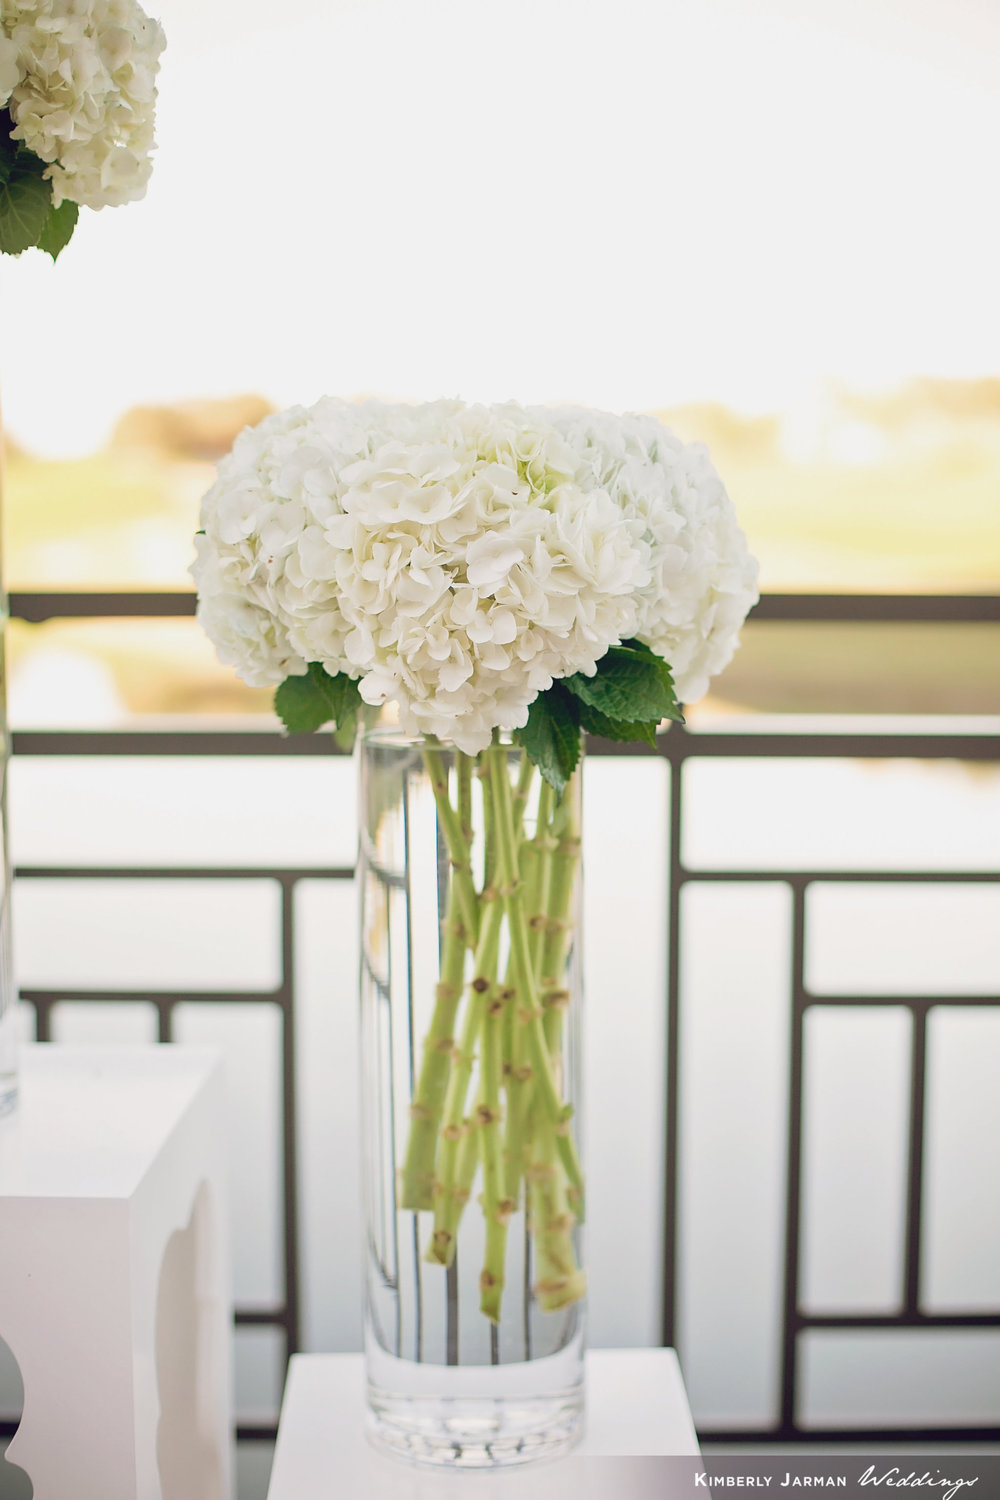 Classic, elegant wedding, white and gold wedding, ceremony alter flowers, white alter flowers, white hydrangea bouquets